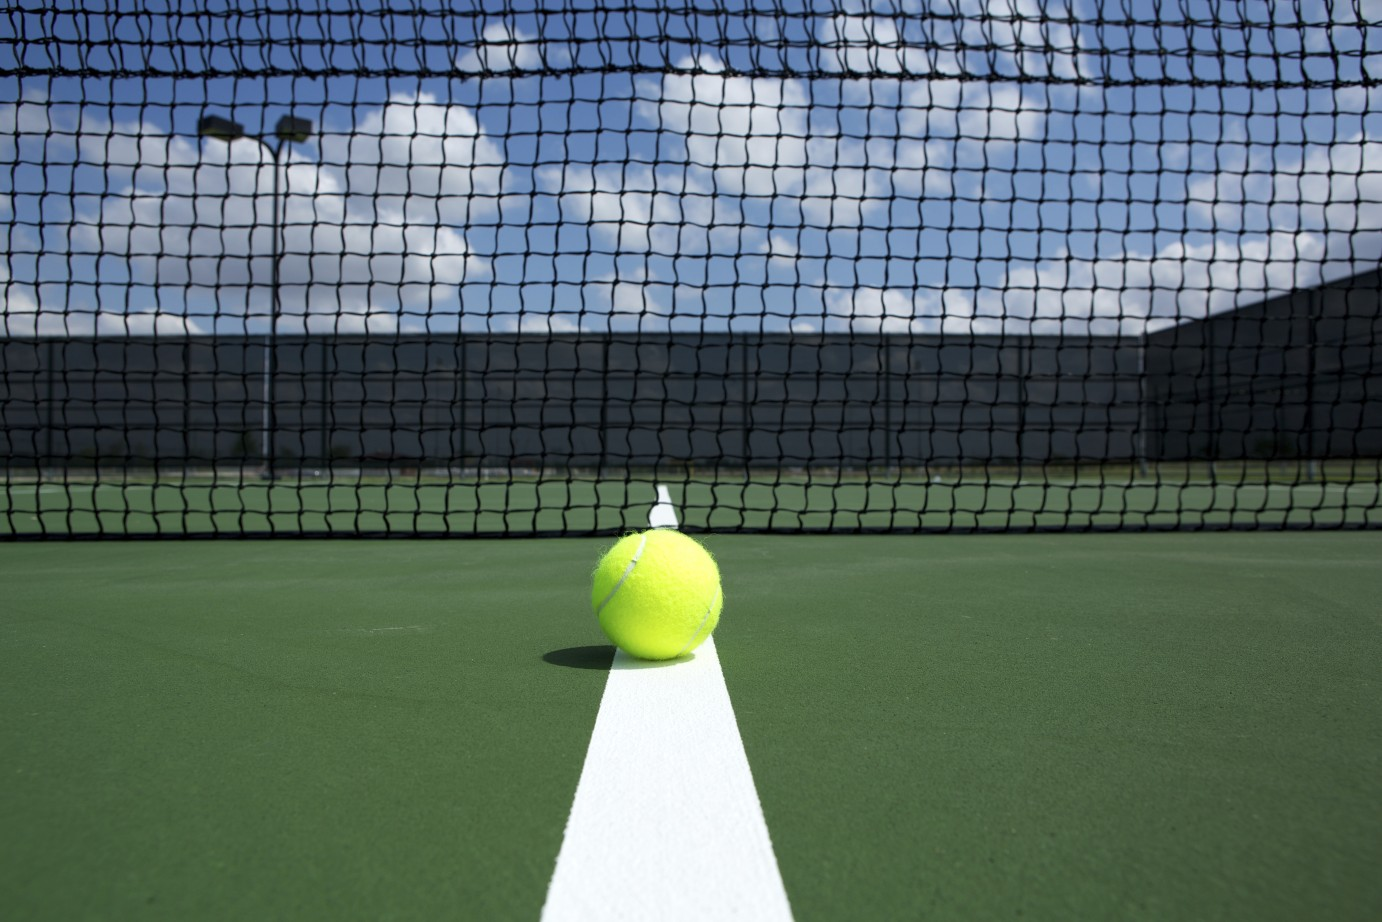 Any good Black Friday deals on tennis racquets? (loretco.ga) submitted 4 years ago by TheMoneyPerson. I am in the market to get a new tennis racquet for myself, and to get a tennis racquet as an Xmas present for my girlfriend. Are there any particularly good deals out there? I see on tennis warehouse that they have a deal on Slazenger racquets.